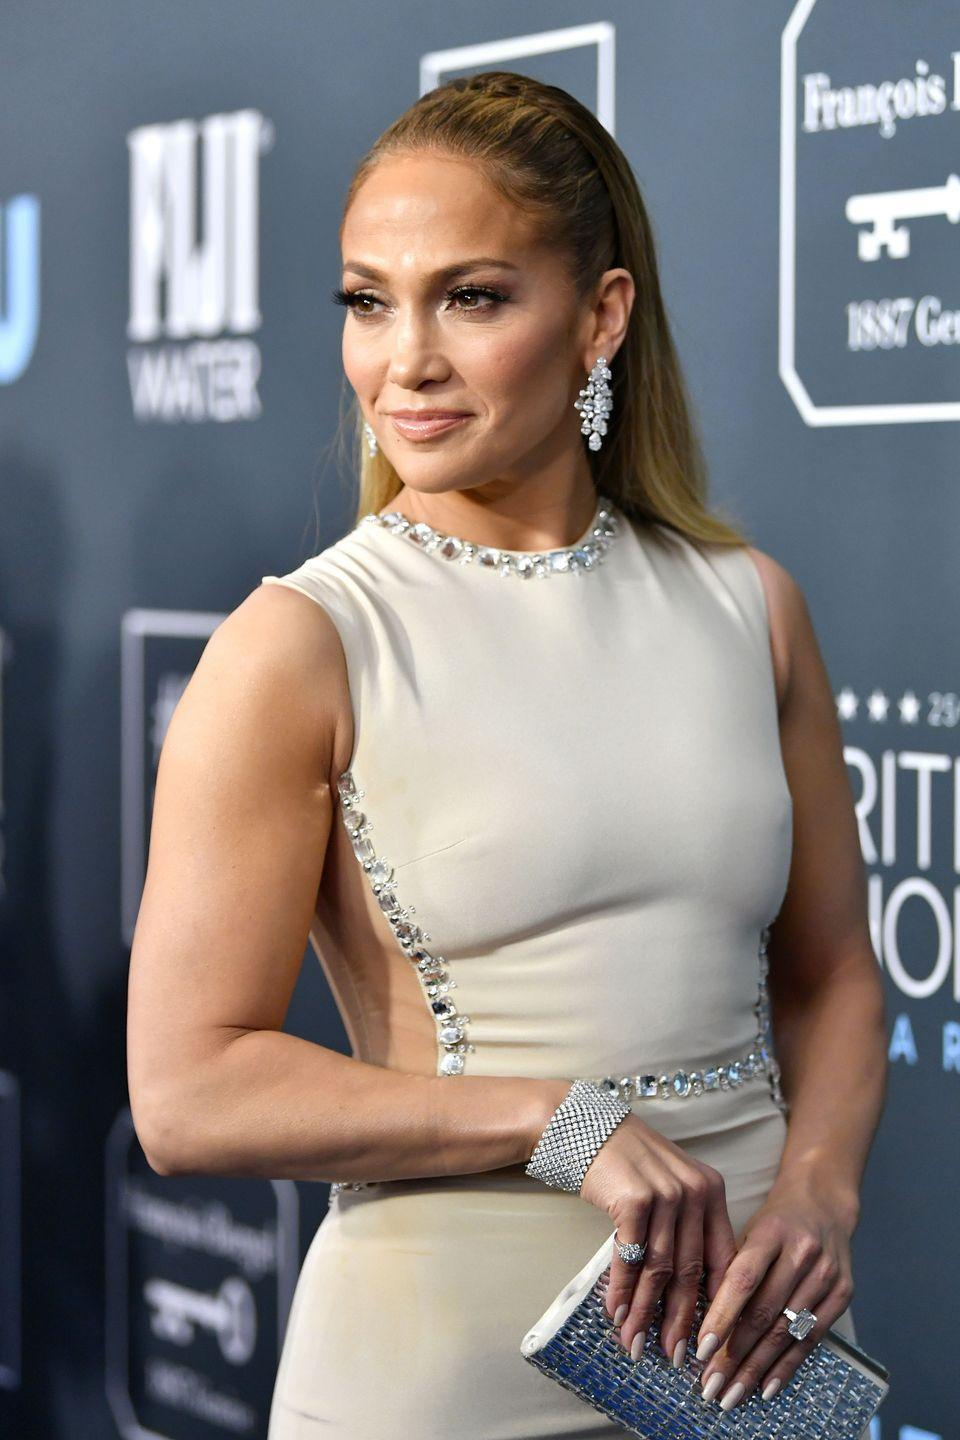 """<p>J.Lo enjoyed a taste of fame with her weekly TV gig as a dancer on <em>In Living Color </em>years before her first album, <em>On the 6</em>. Her debut single """"If You Had My Love"""" reached the top of the charts in several countries in 1999, and the rest is history.</p><p><a class=""""link rapid-noclick-resp"""" href=""""https://www.amazon.com/If-You-Had-My-Love/dp/B00137V6BG/ref=sr_1_1?tag=syn-yahoo-20&ascsubtag=%5Bartid%7C10063.g.30535280%5Bsrc%7Cyahoo-us"""" rel=""""nofollow noopener"""" target=""""_blank"""" data-ylk=""""slk:BUY NOW"""">BUY NOW</a></p>"""